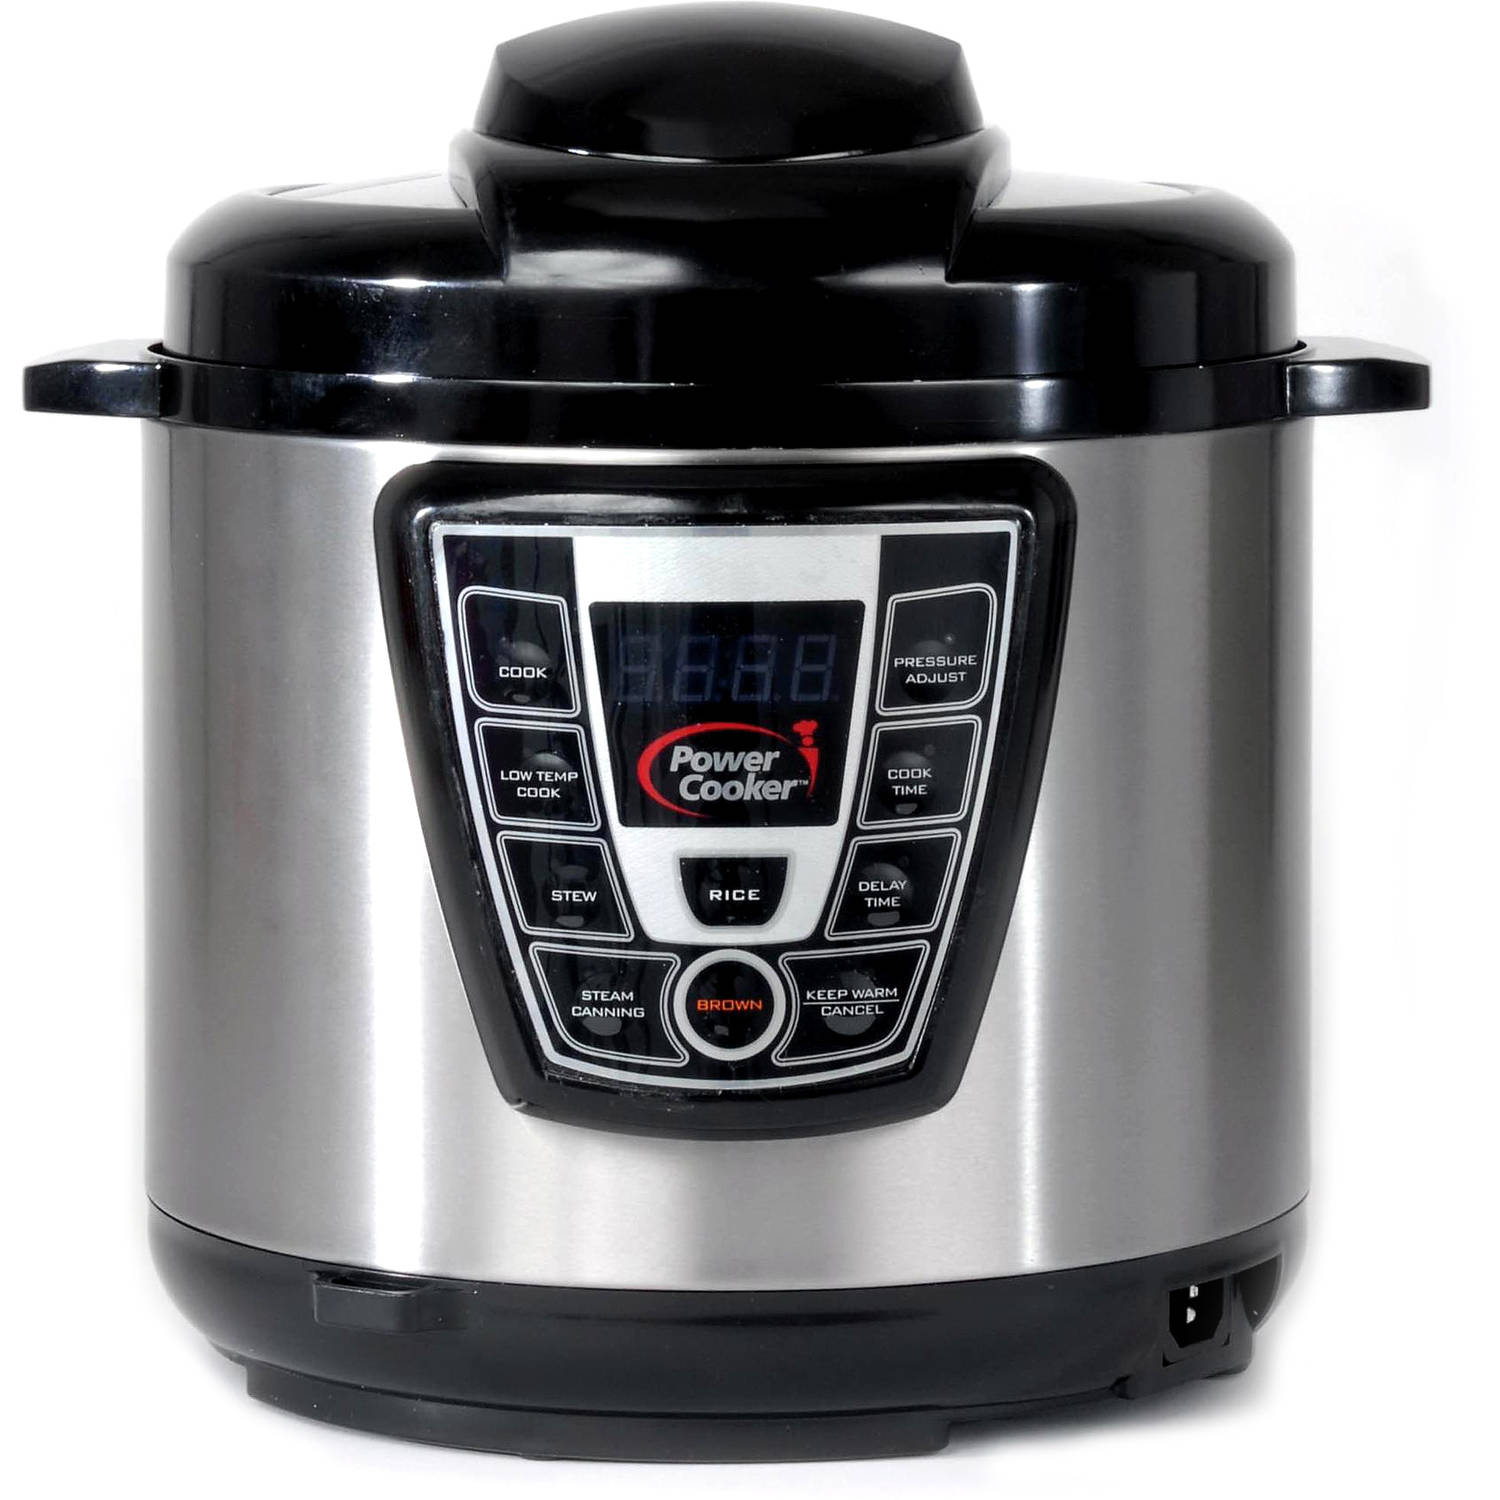 Refurbished Power Cooker PC-WAL1 6 qt Pressure Cooker, Silver